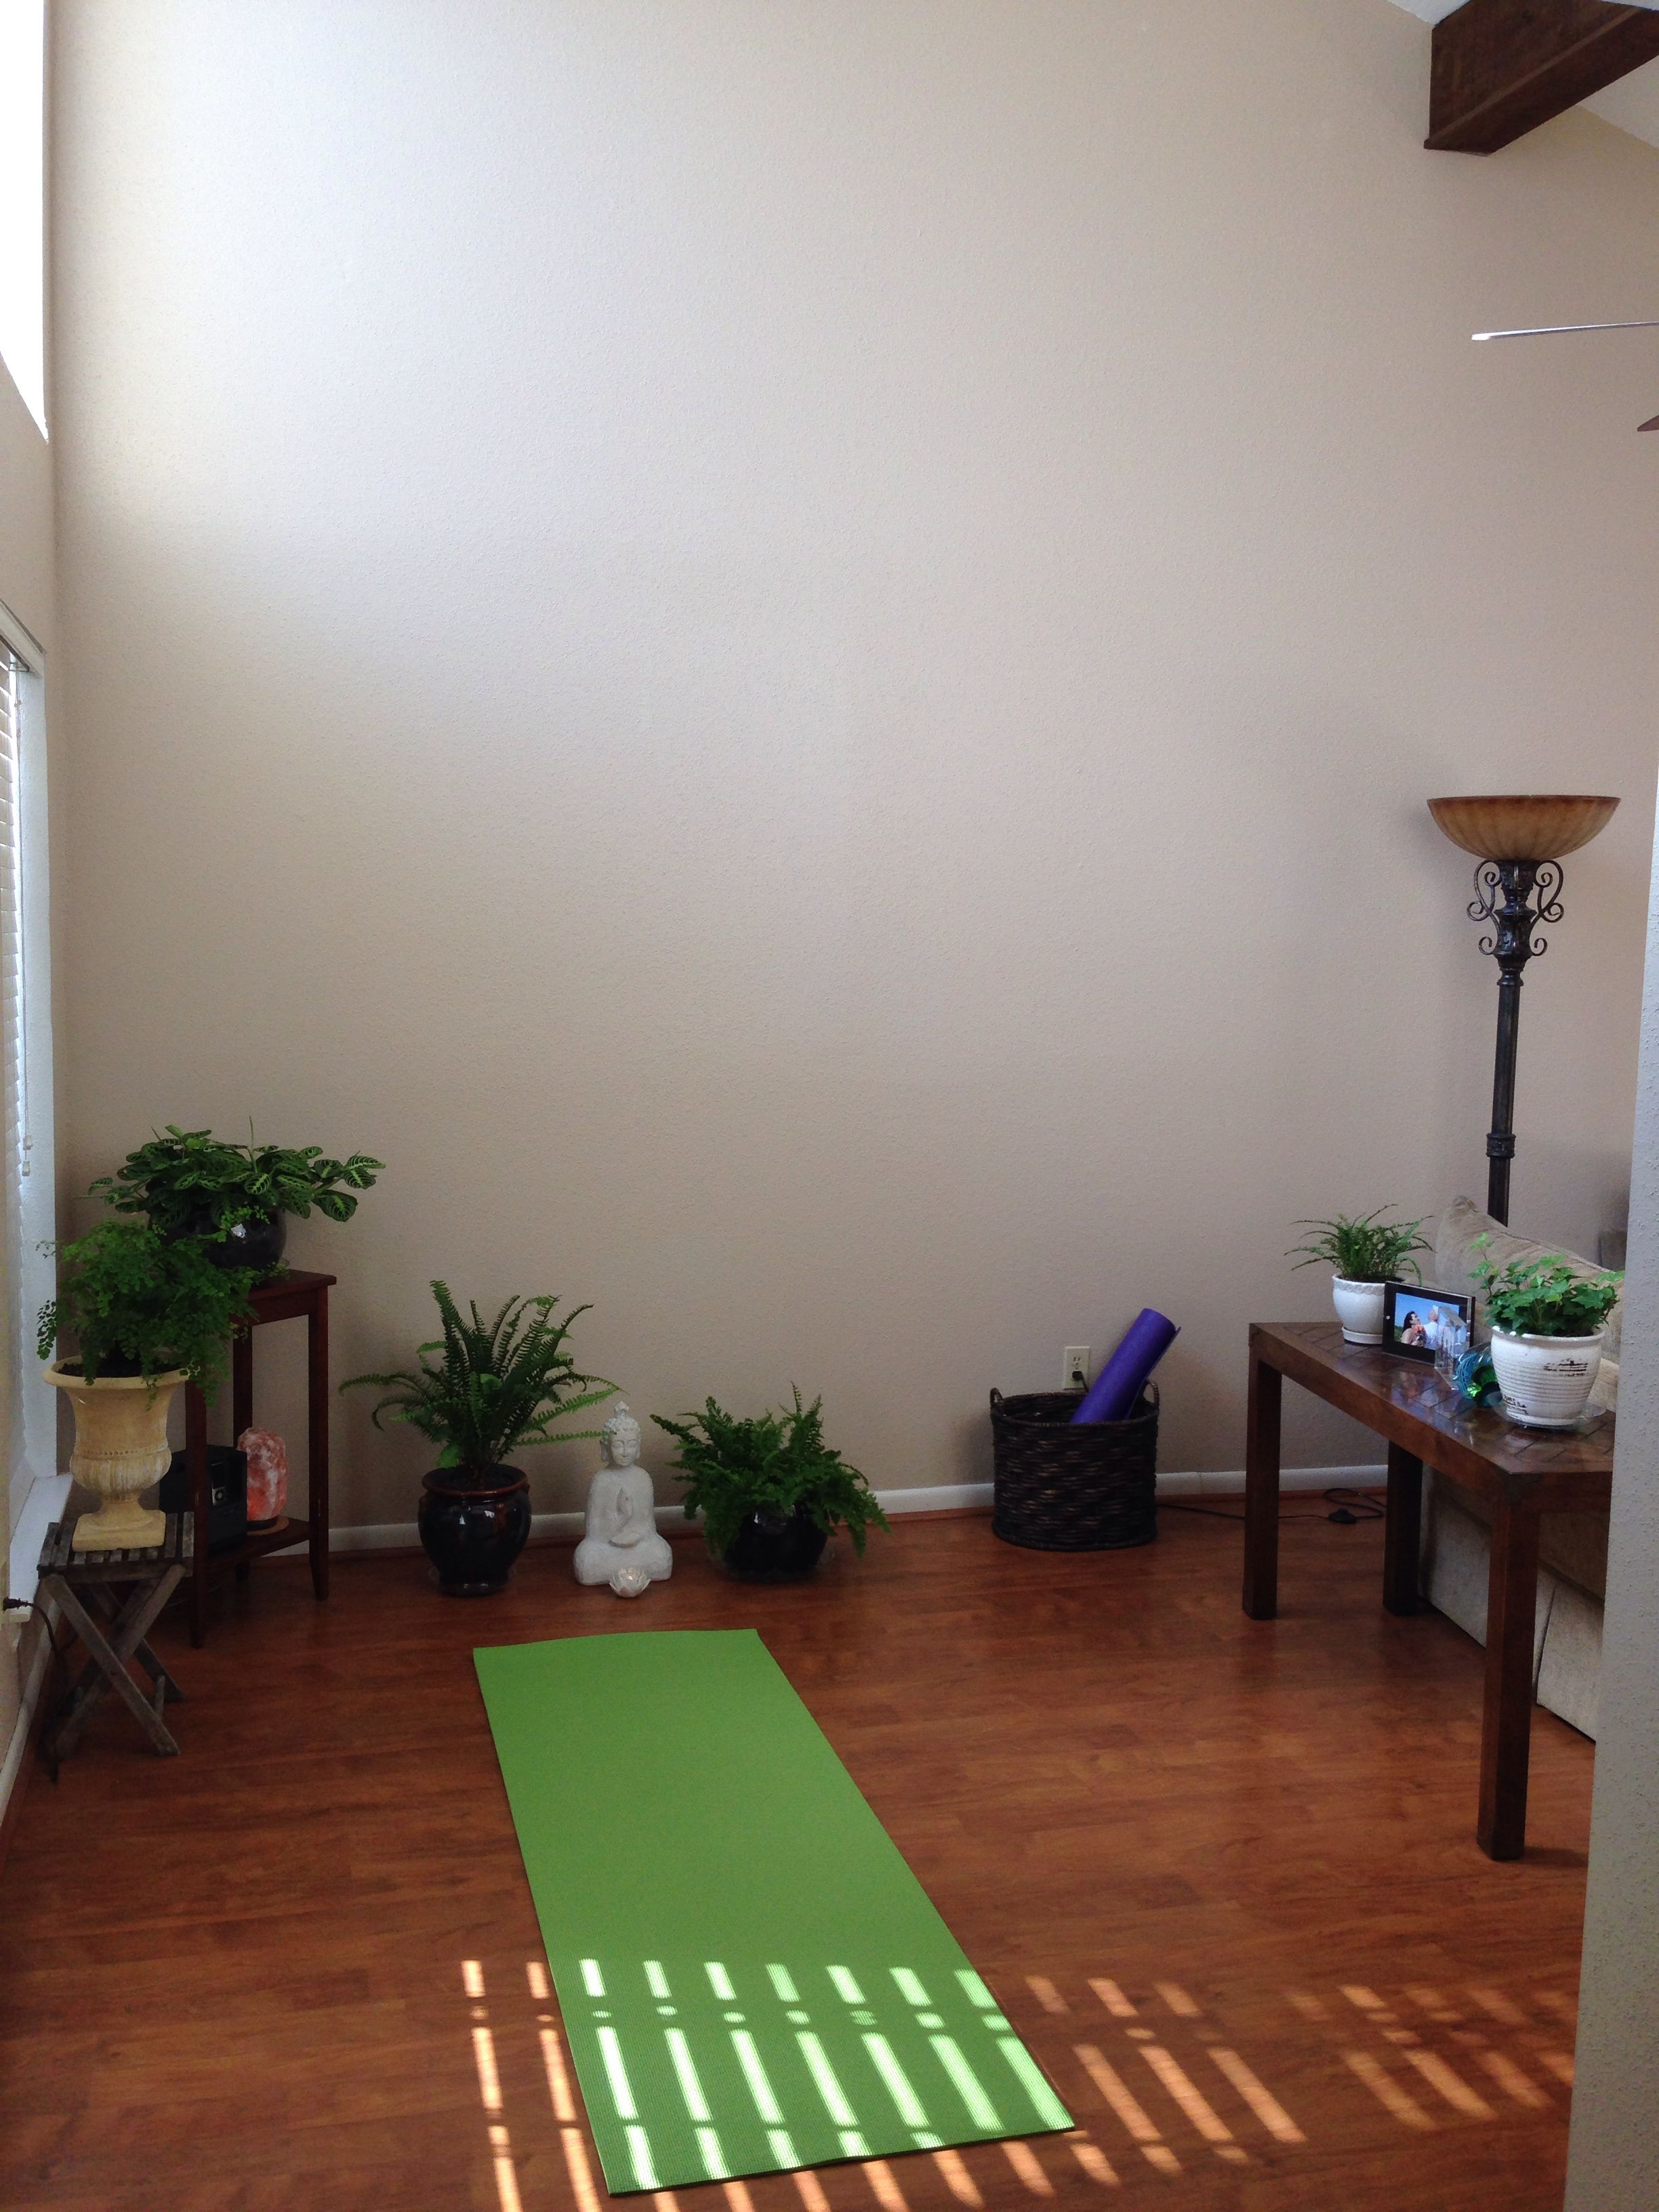 My Home Yoga Space